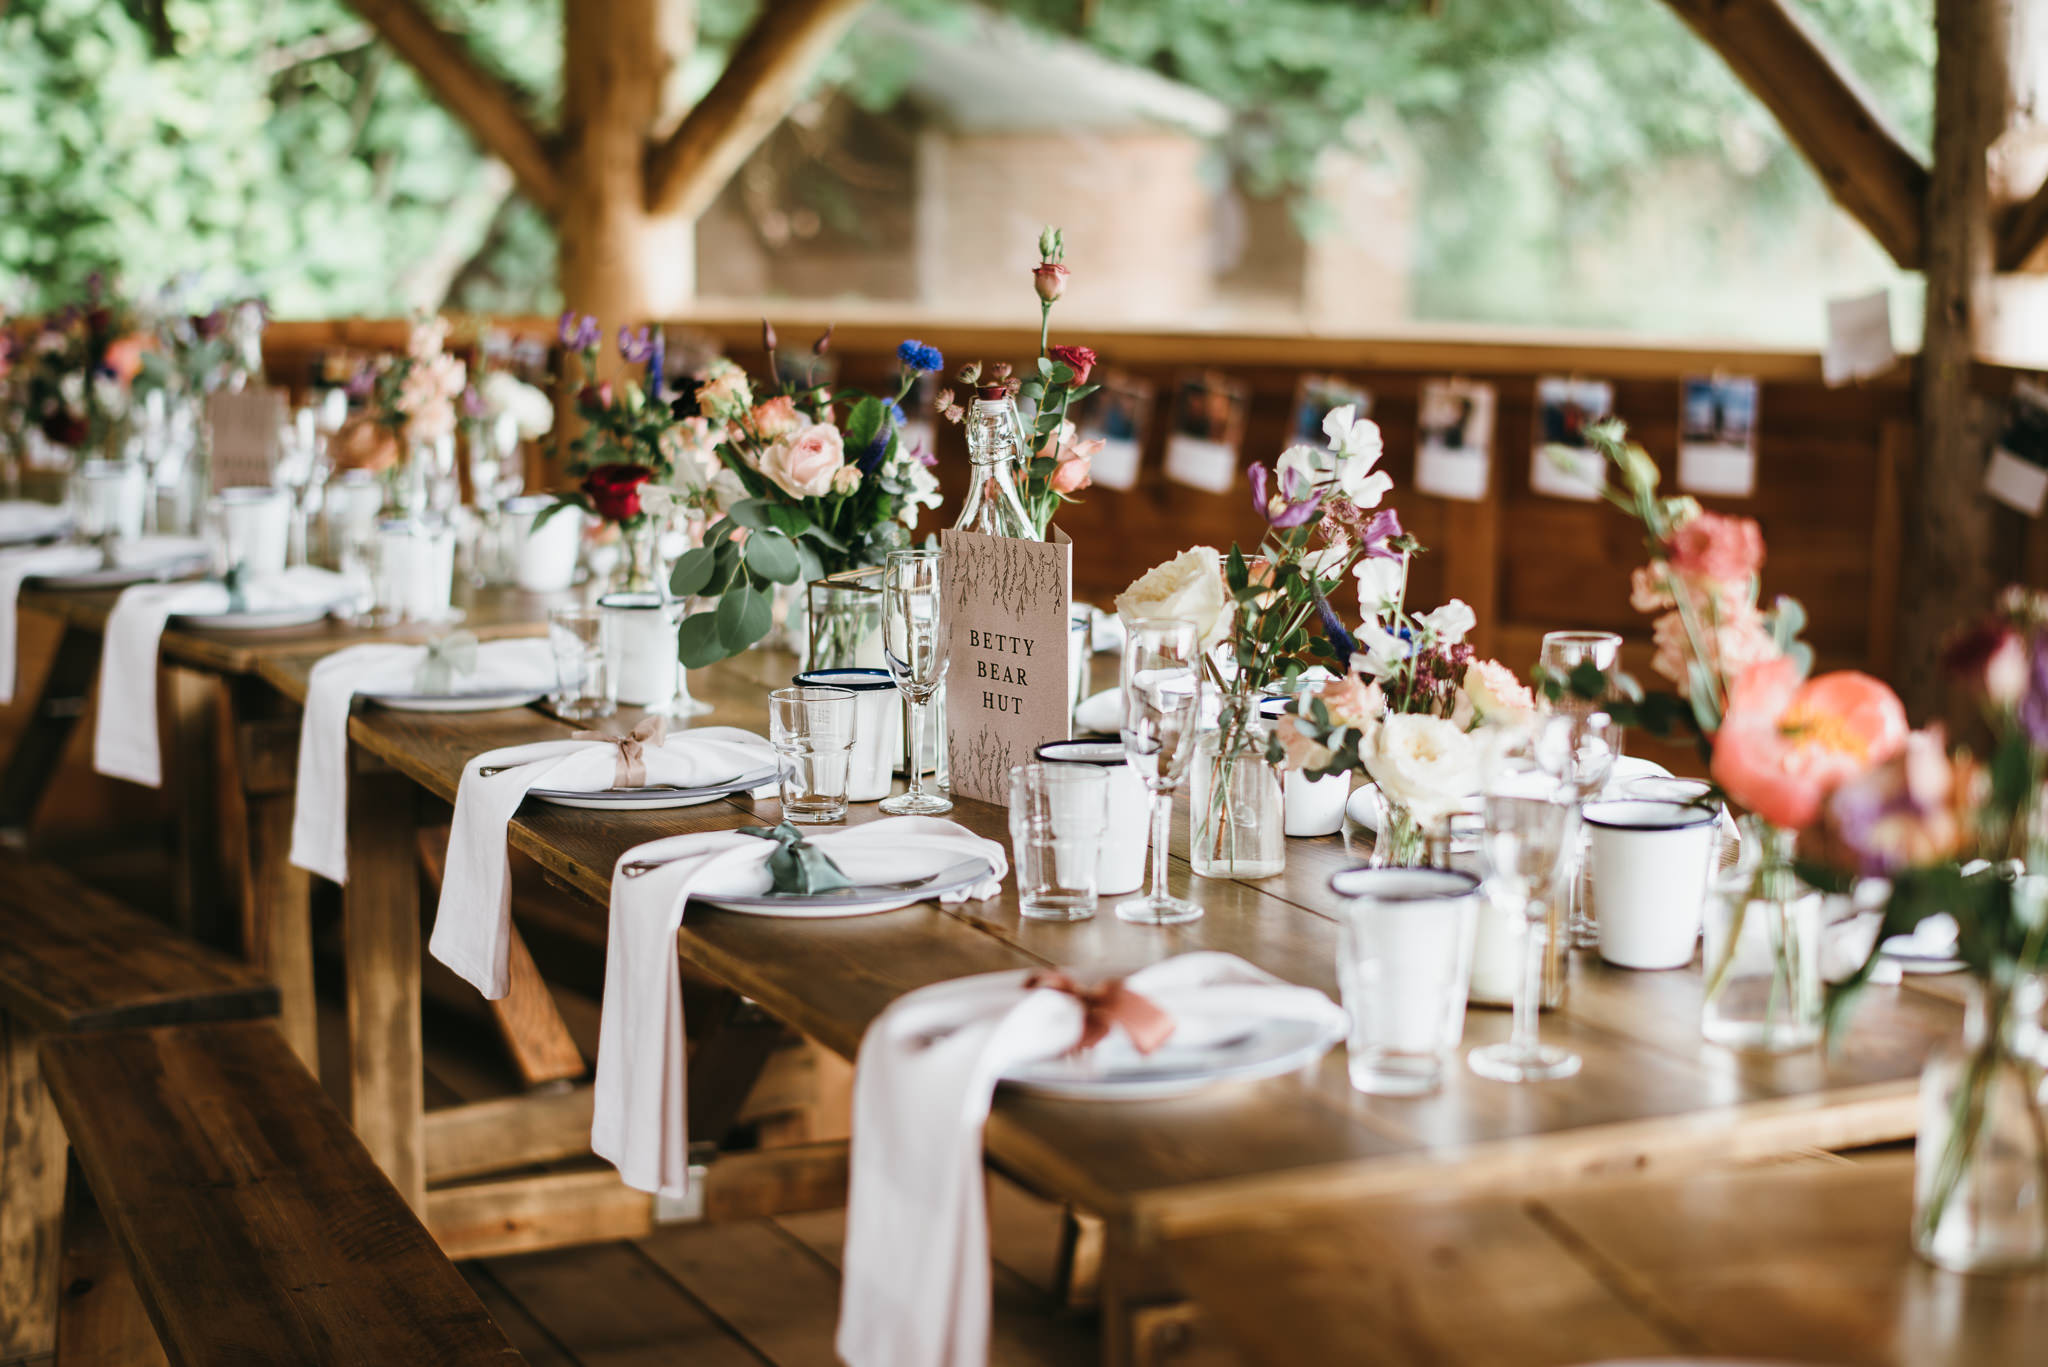 Farm camp wedding setup